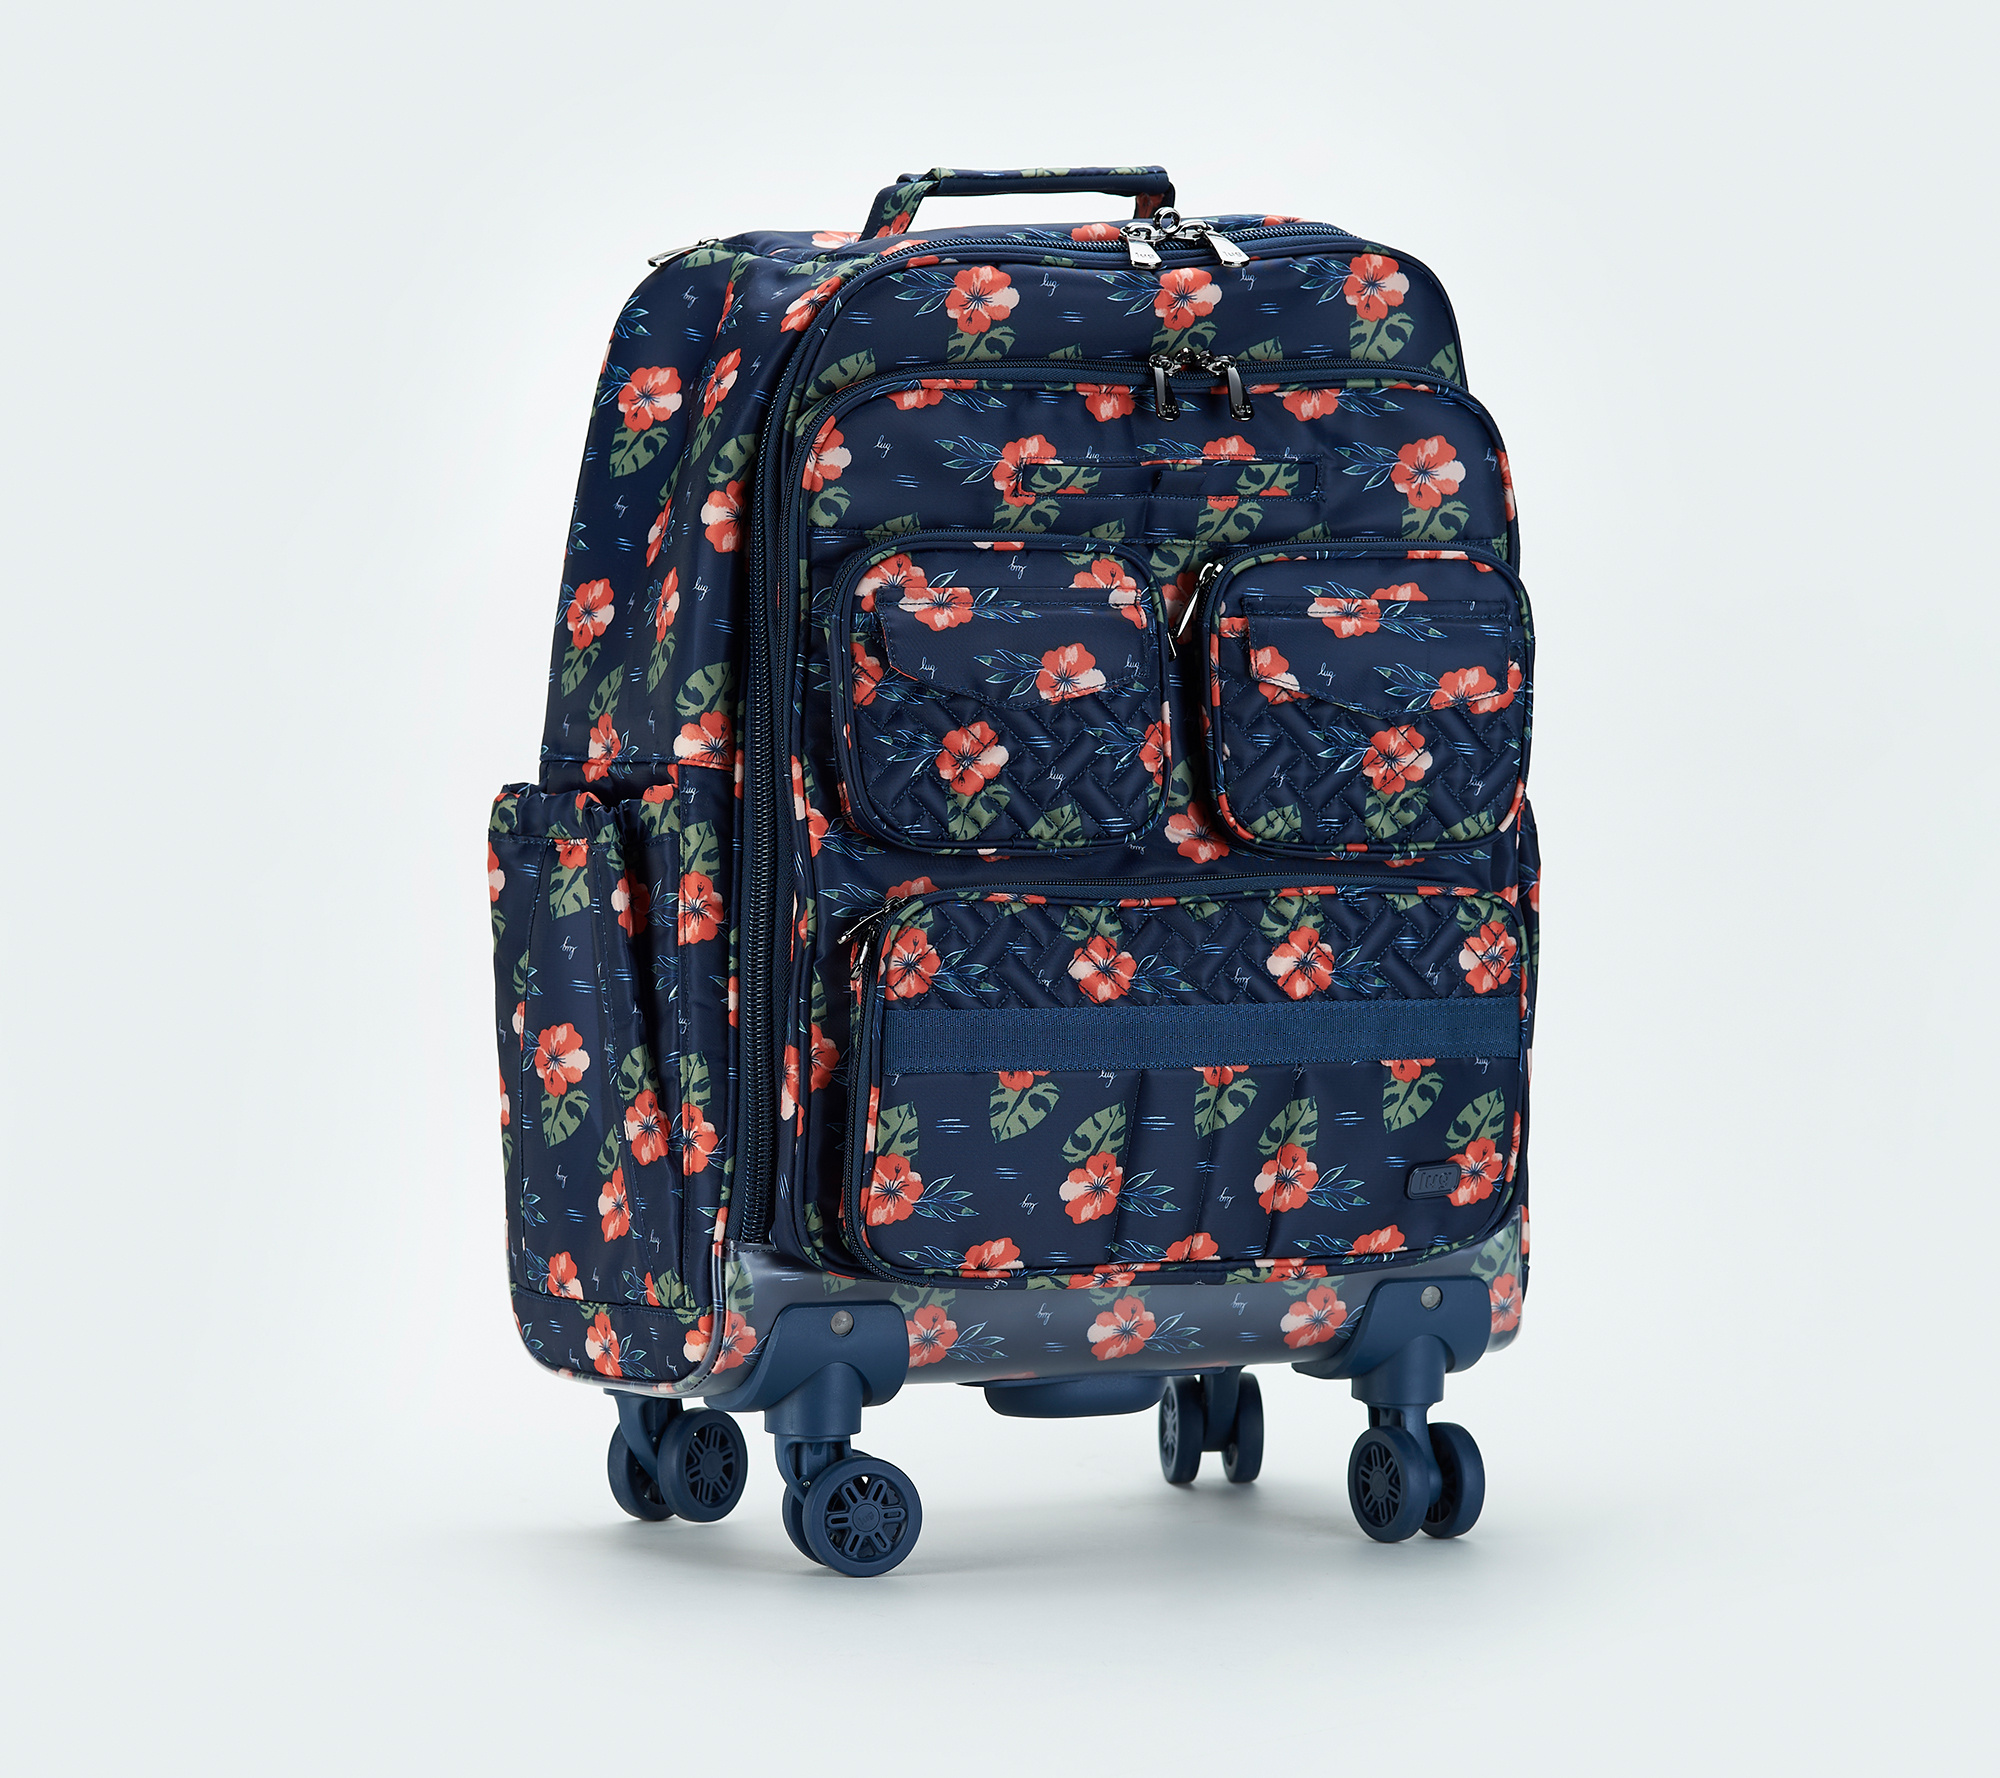 How to Choose the Best Duffel bag?